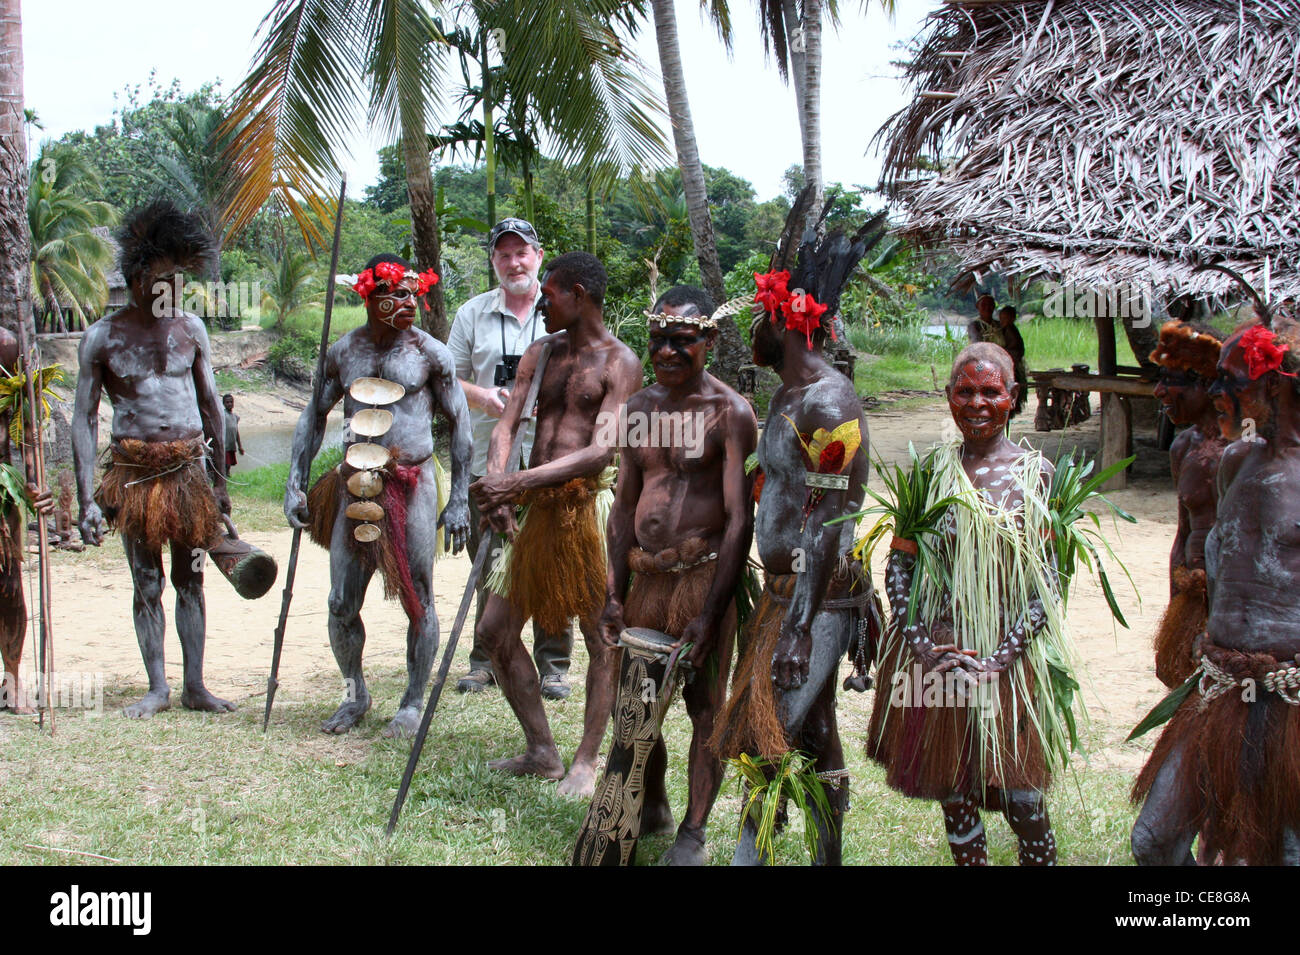 Traveller with remote tribal people in Papua New Guinea - Stock Image